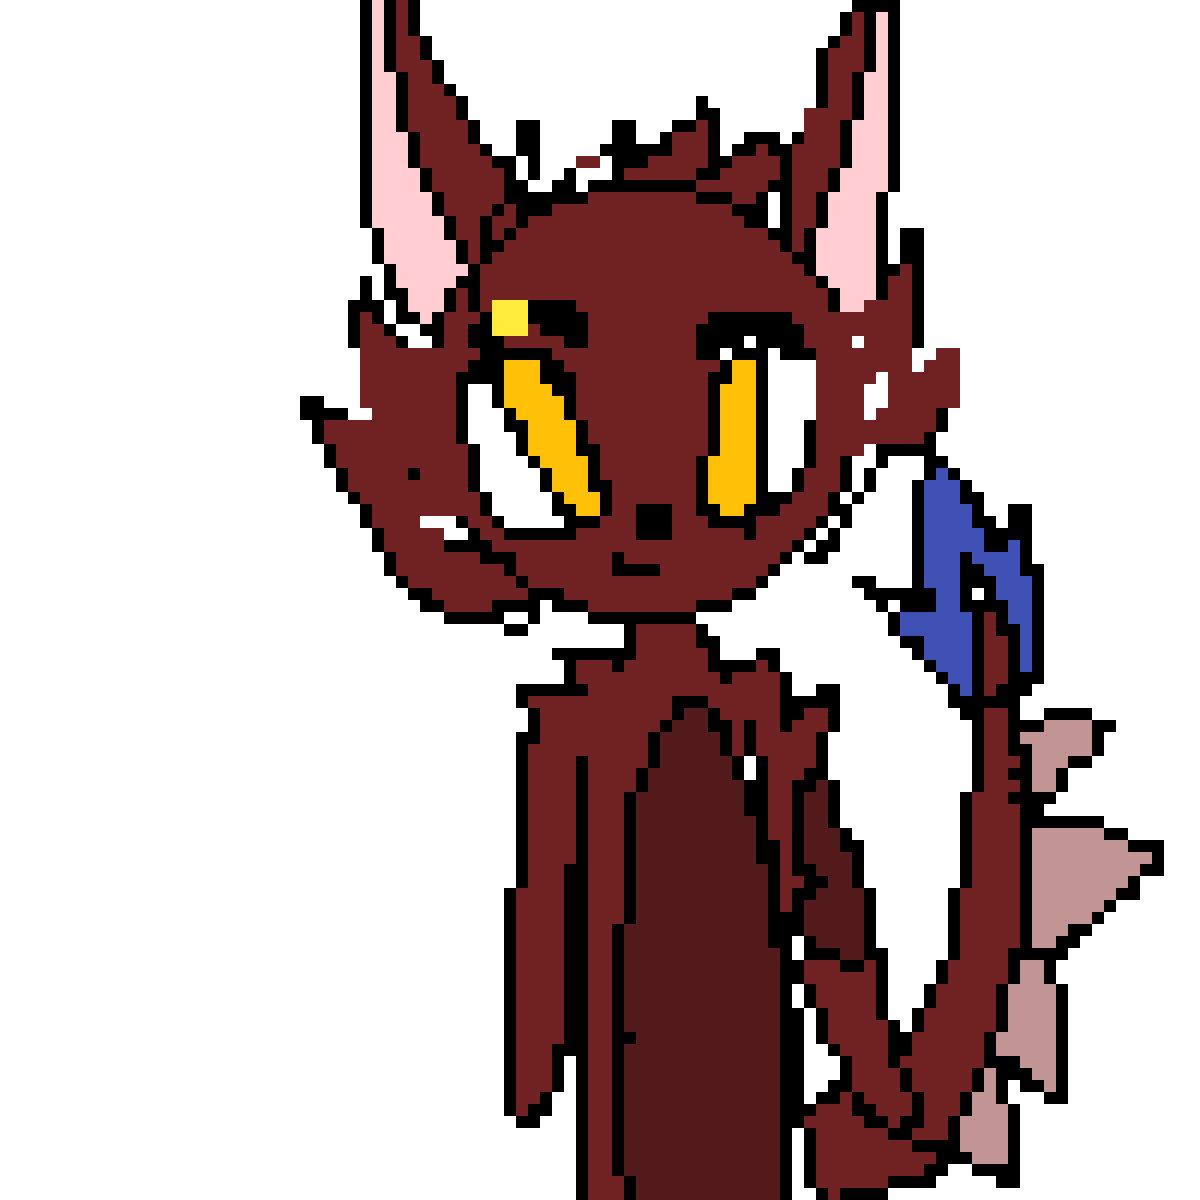 LilKat059 's OC in my style